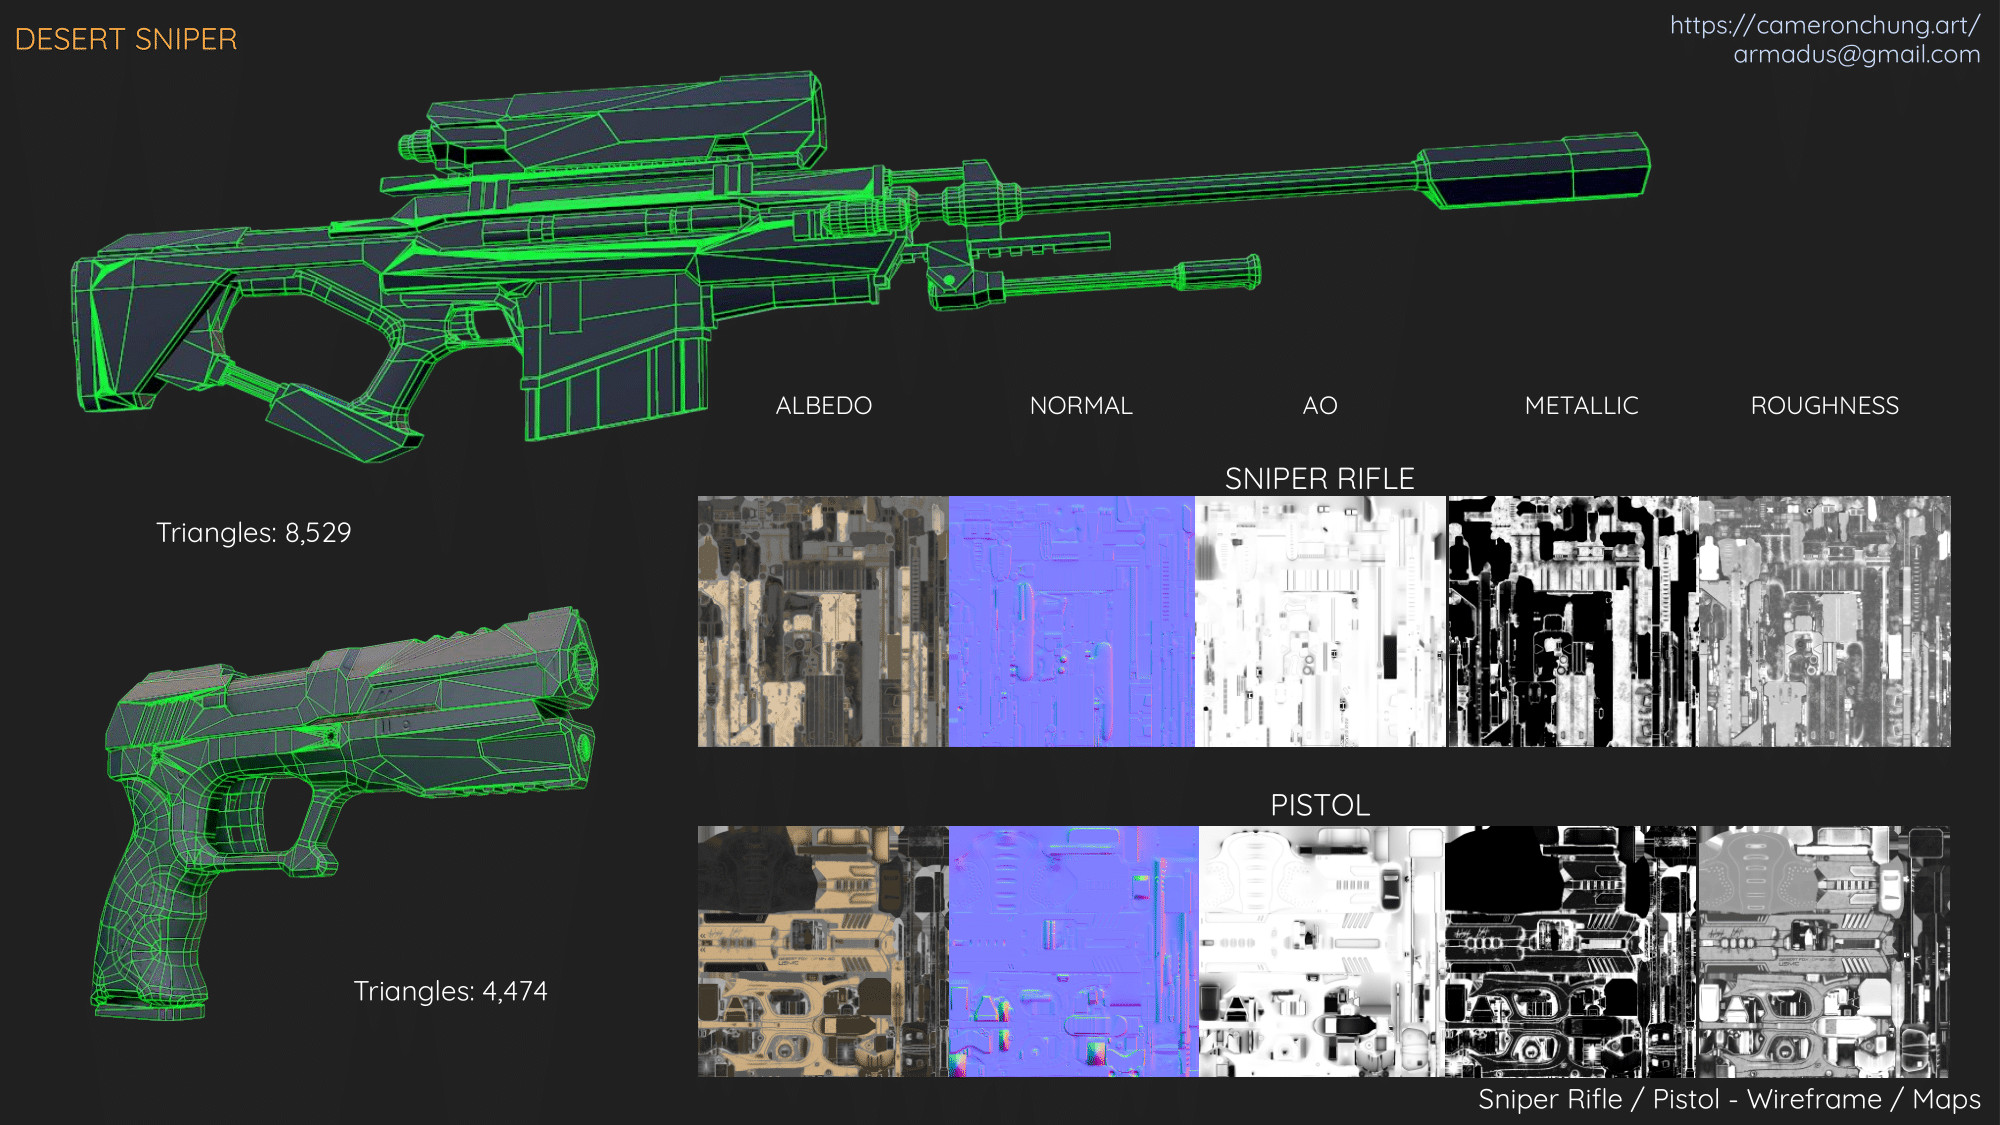 Sniper Rifle / Pistol - Wireframe / Maps